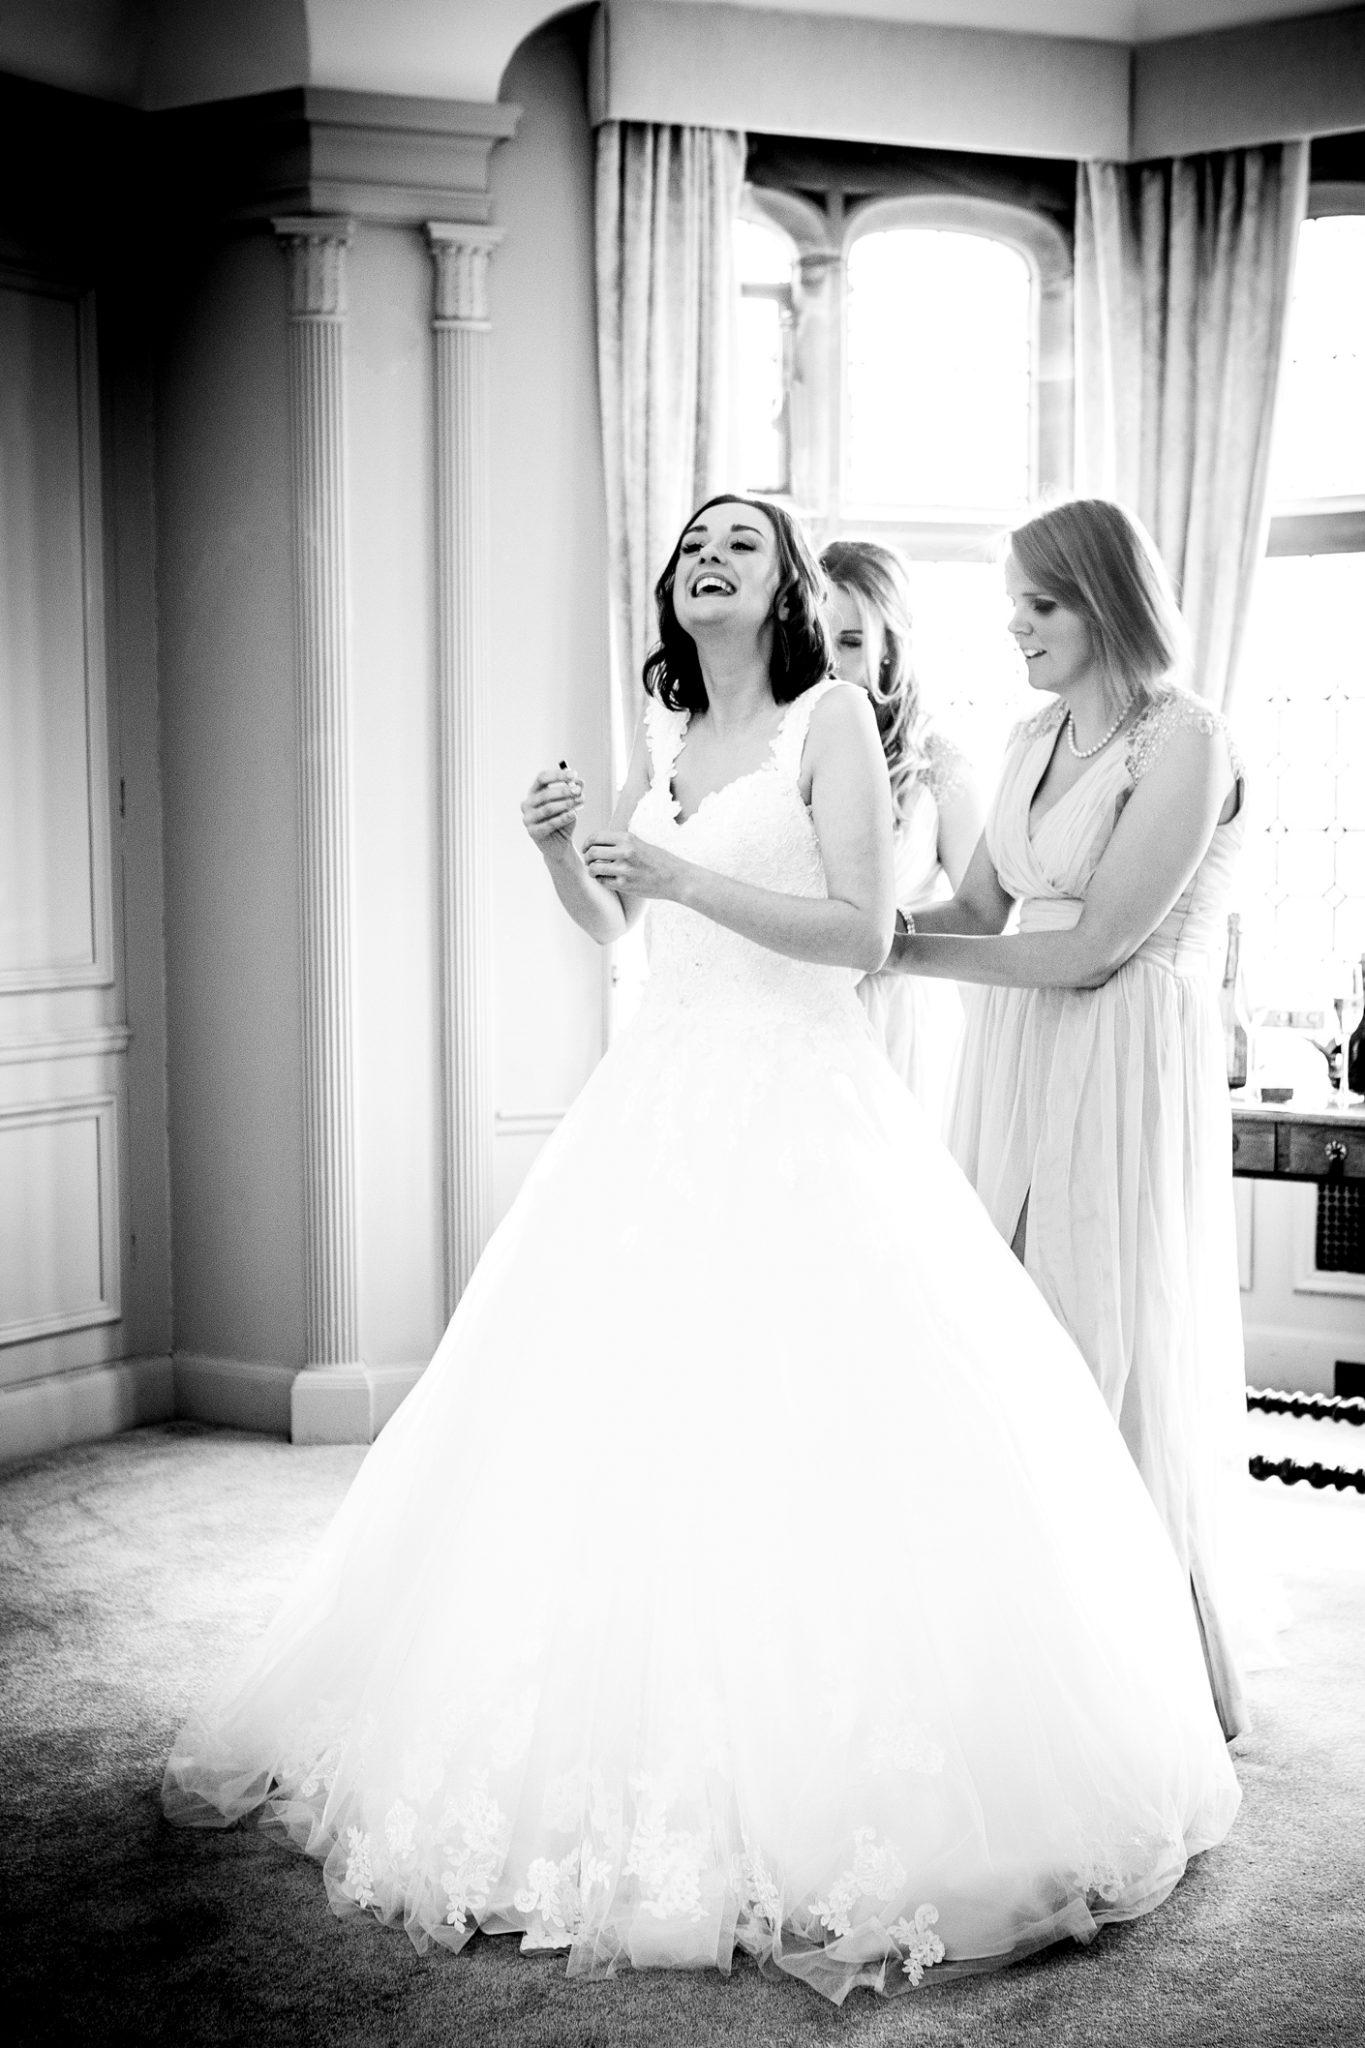 photography-of-the-bride-getting-married-at-the-wedding-venue-thornton-manor